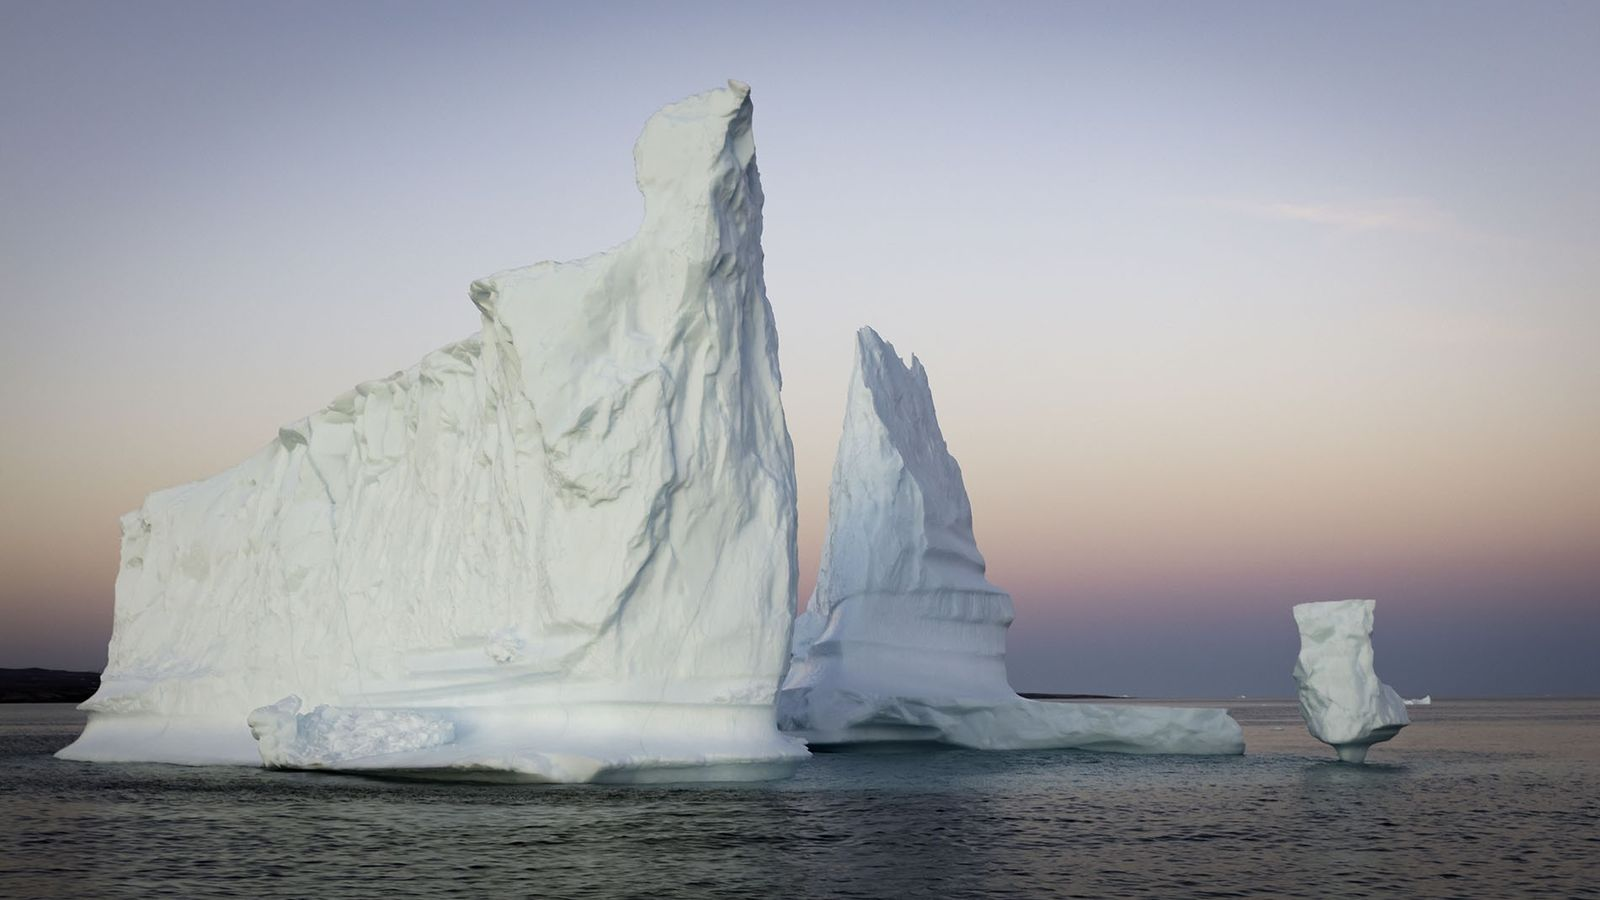 Icebergs in Greenland's Scoresby Sound